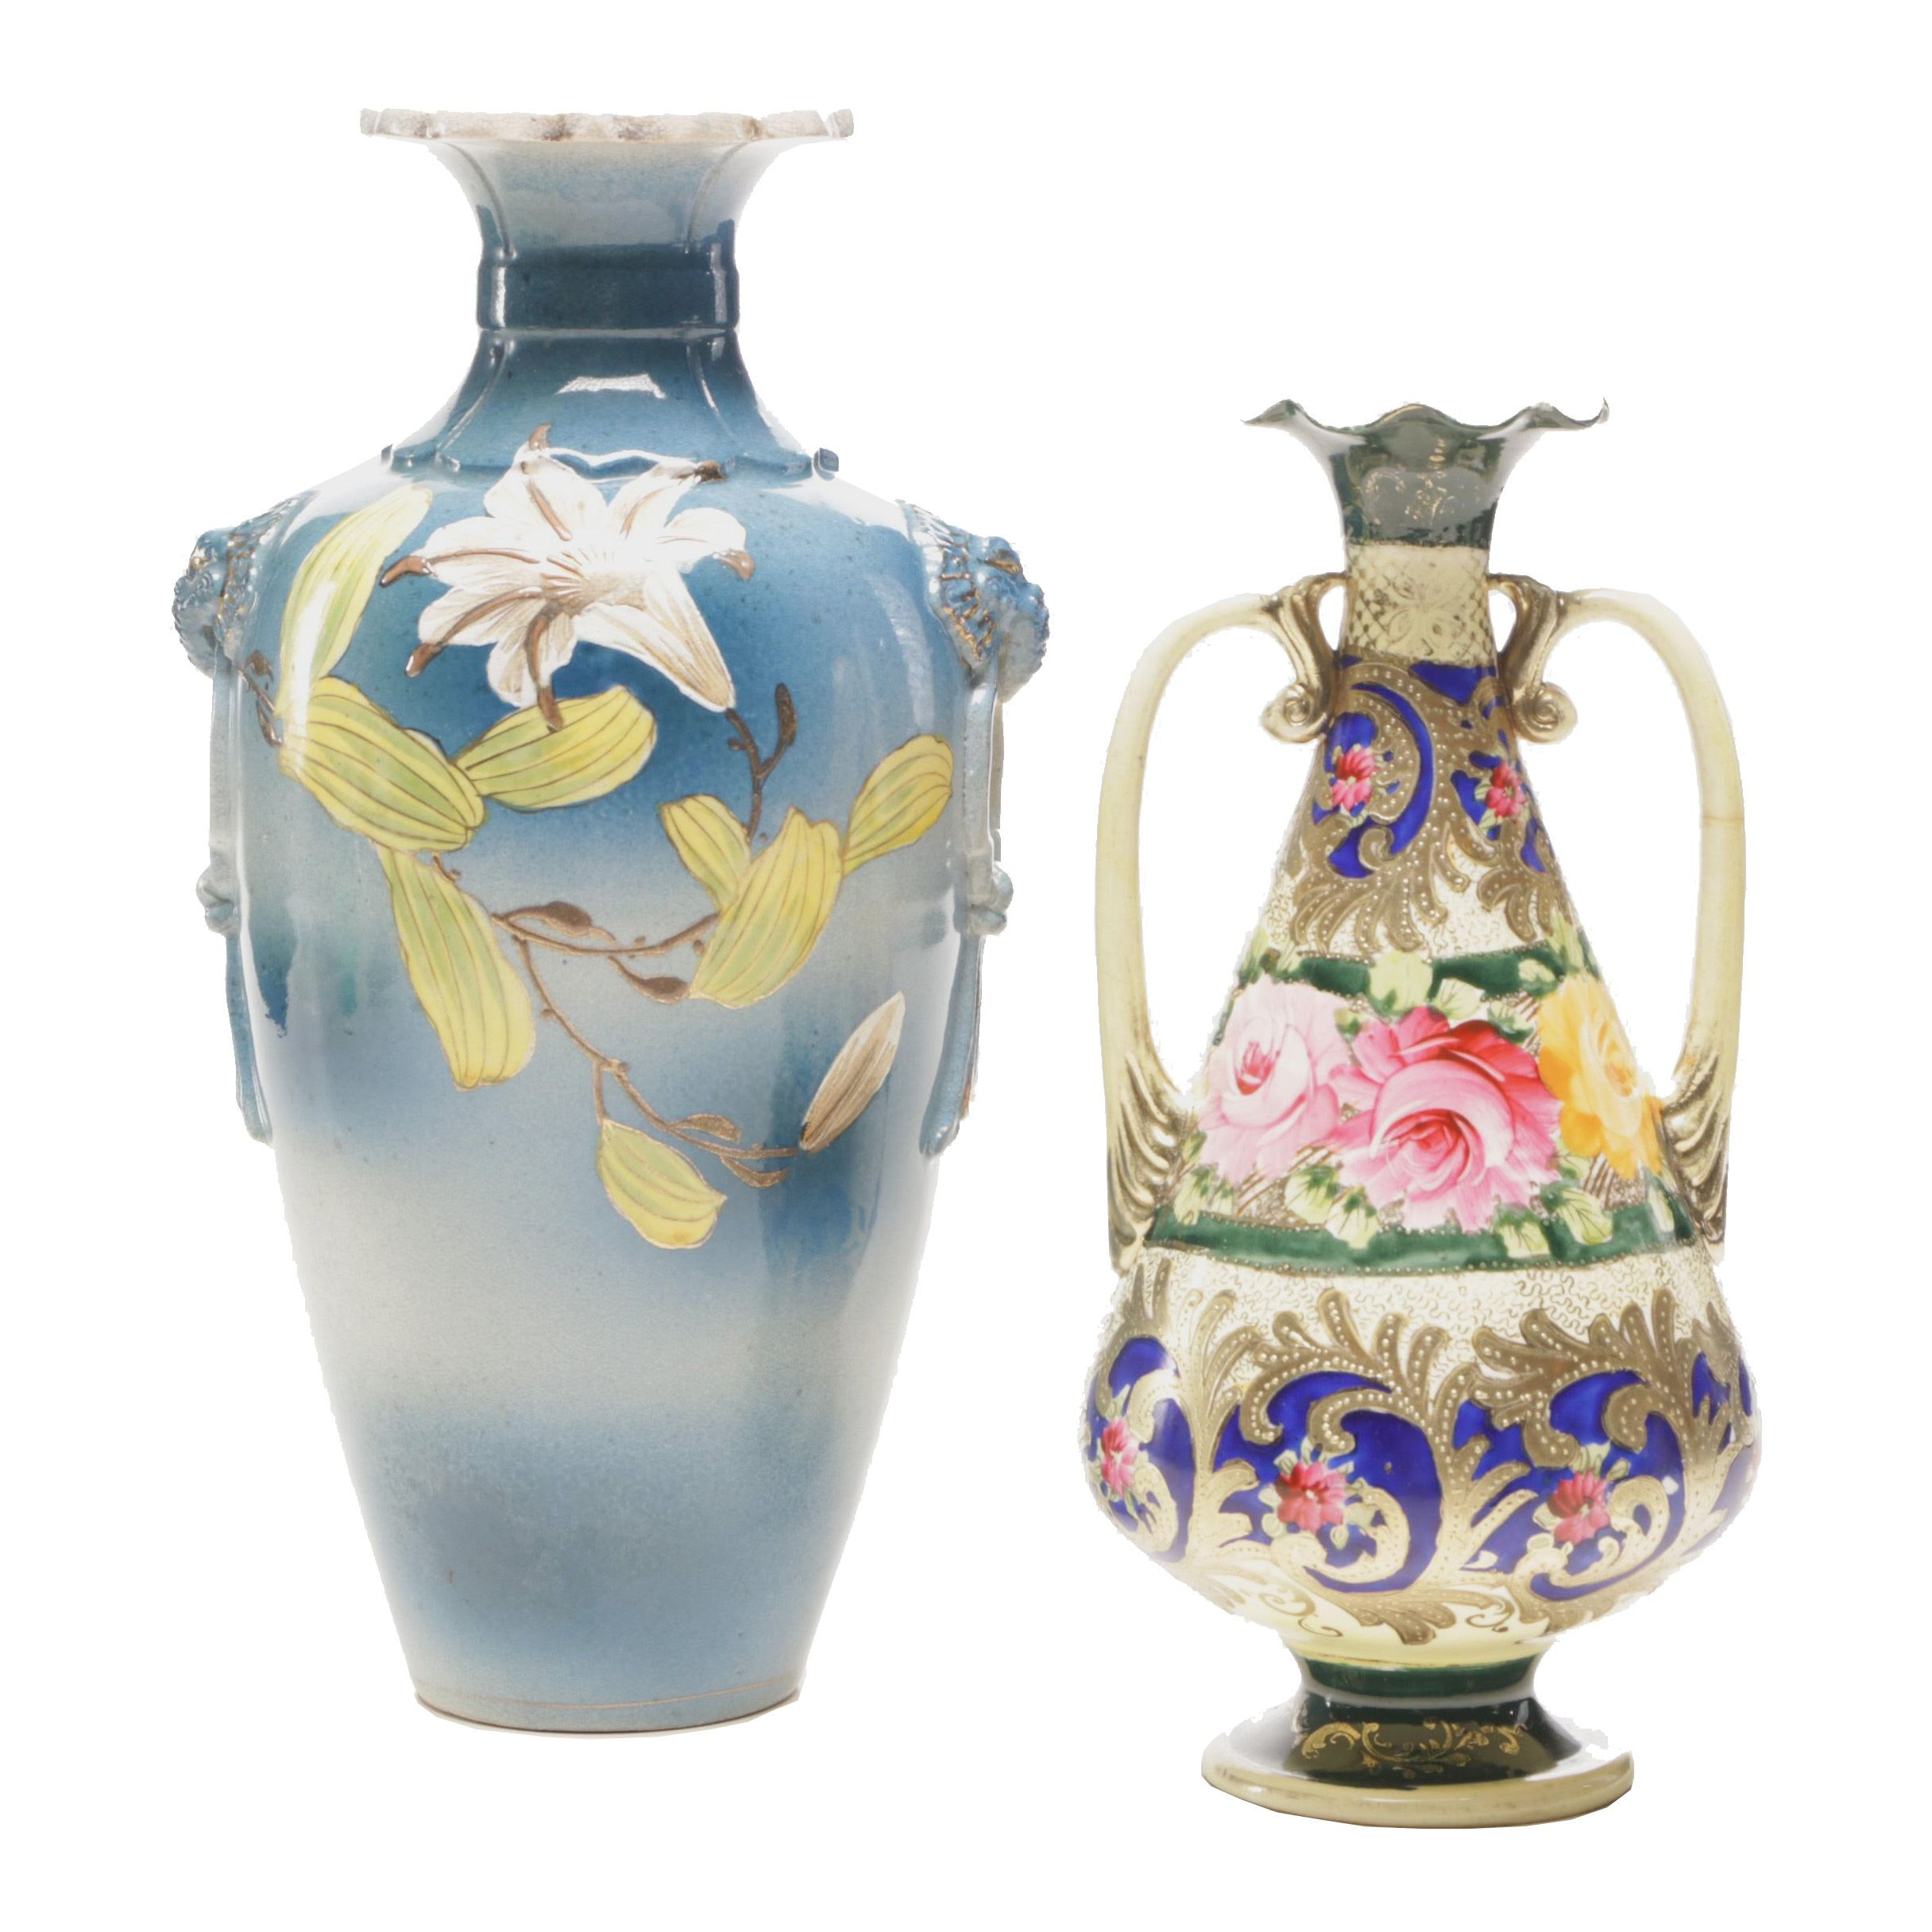 Decorative Hand-Painted Vases